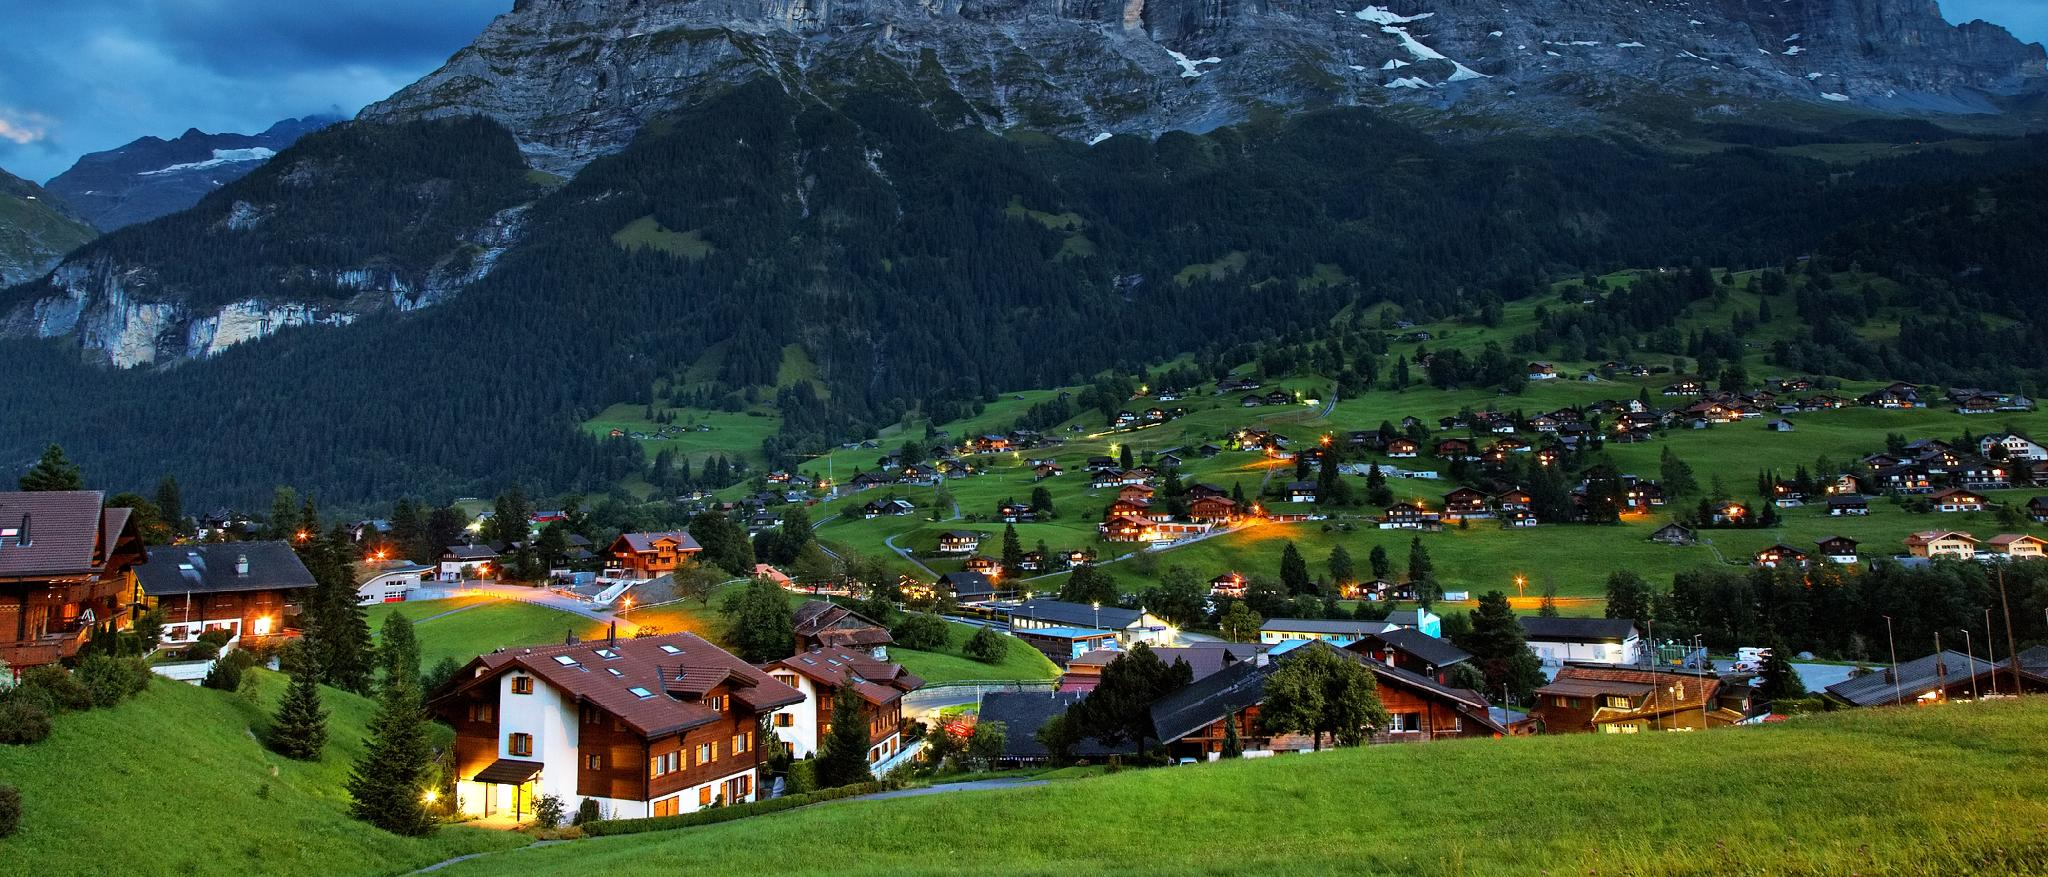 Grindelwald Hotels, Switzerland: Great savings and real reviews